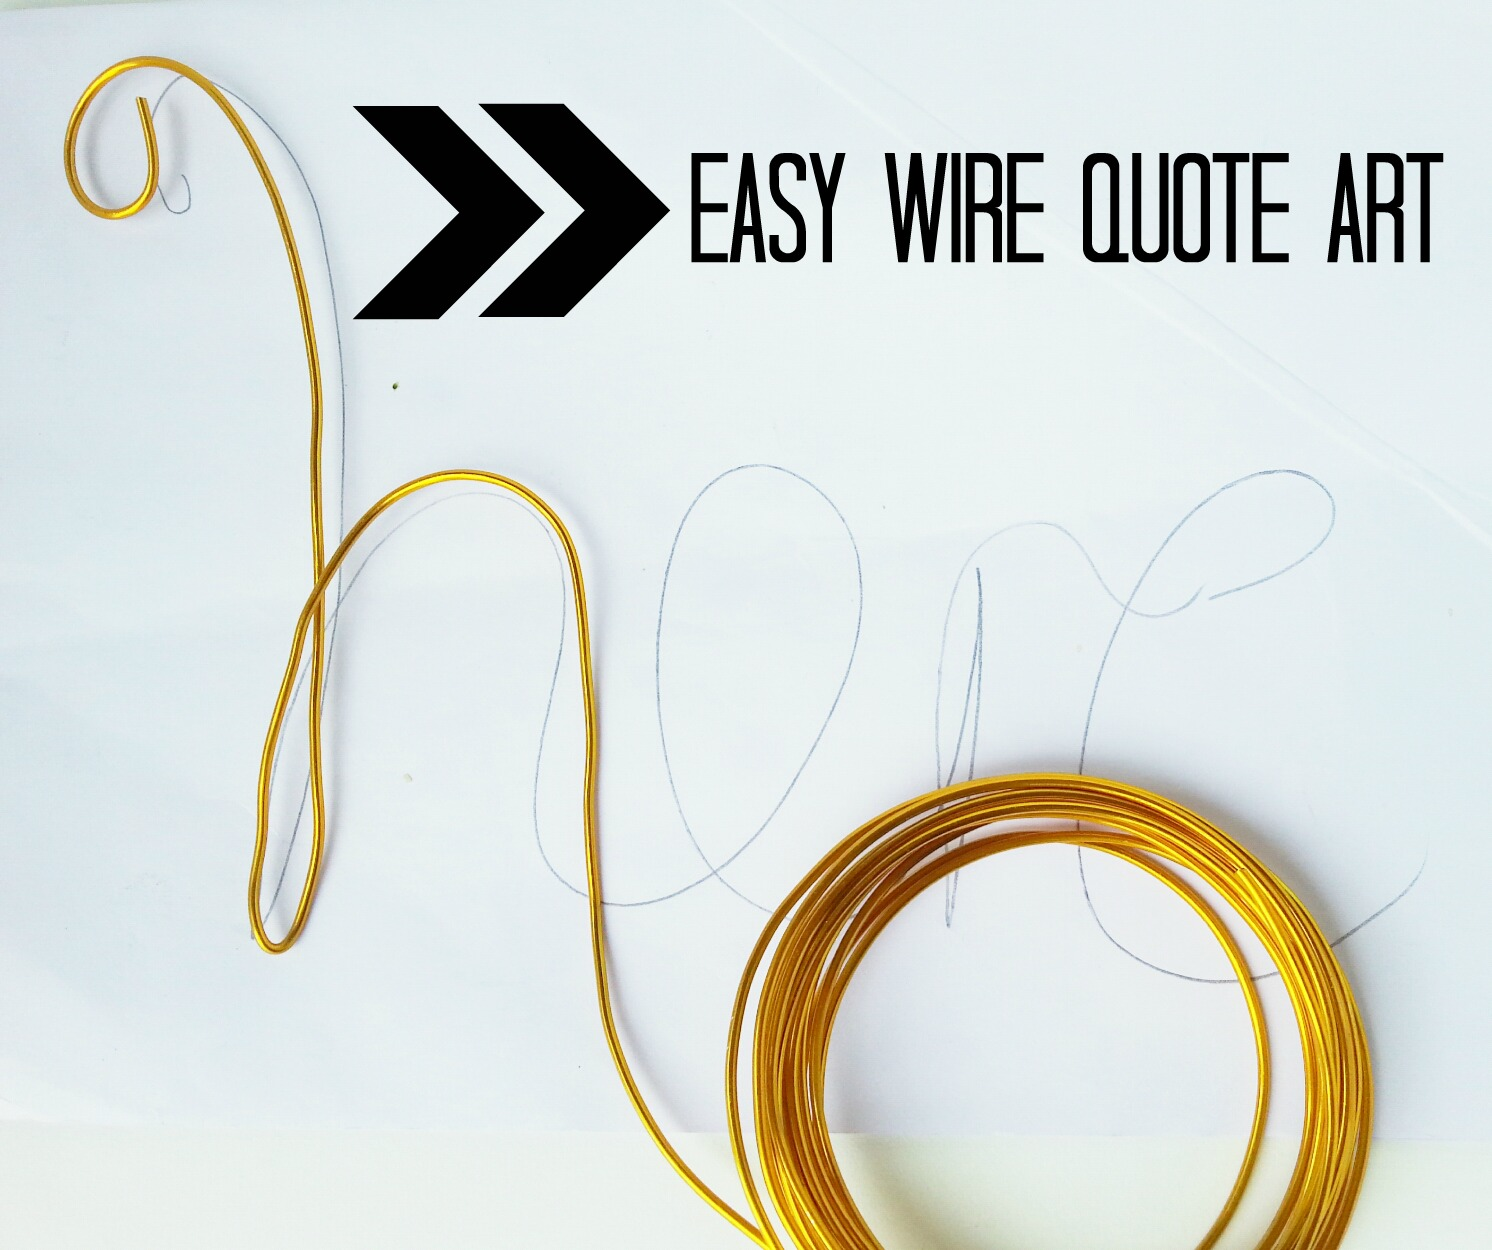 Easy diy wire quote art ~ Make Do and DIY